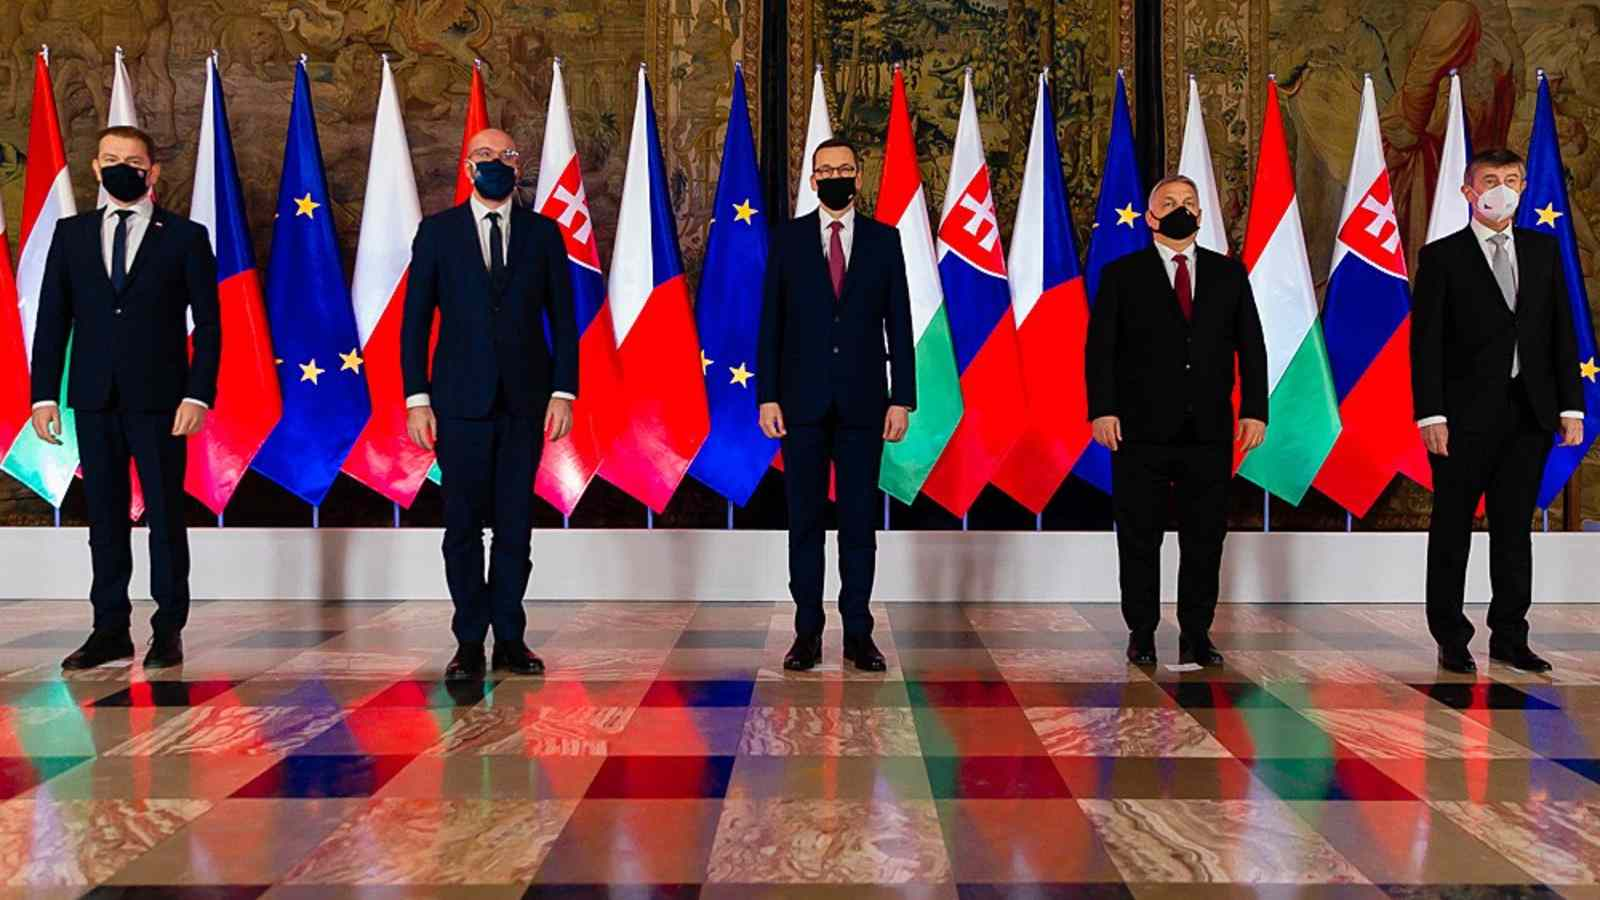 Photo: Visegrad Group delivers specifics at Anniversary Summit. Credit: Prime Minister of Poland. Krystian Maj/KPRM